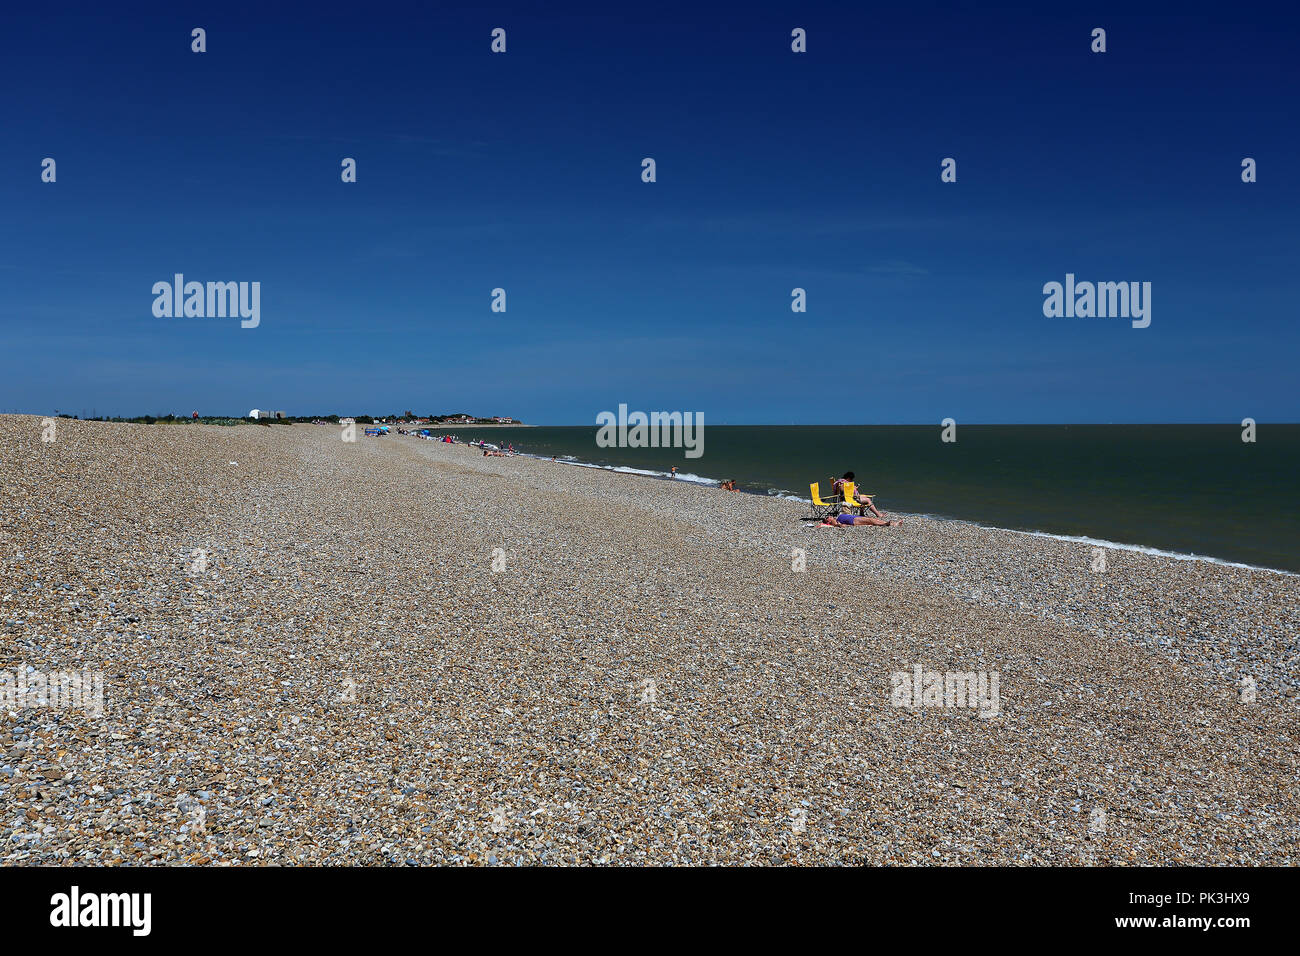 Sunbathing holidaymakers relax on a hot summer's day at the shingle beach at Aldeburgh, Suffolk, UK - Stock Image